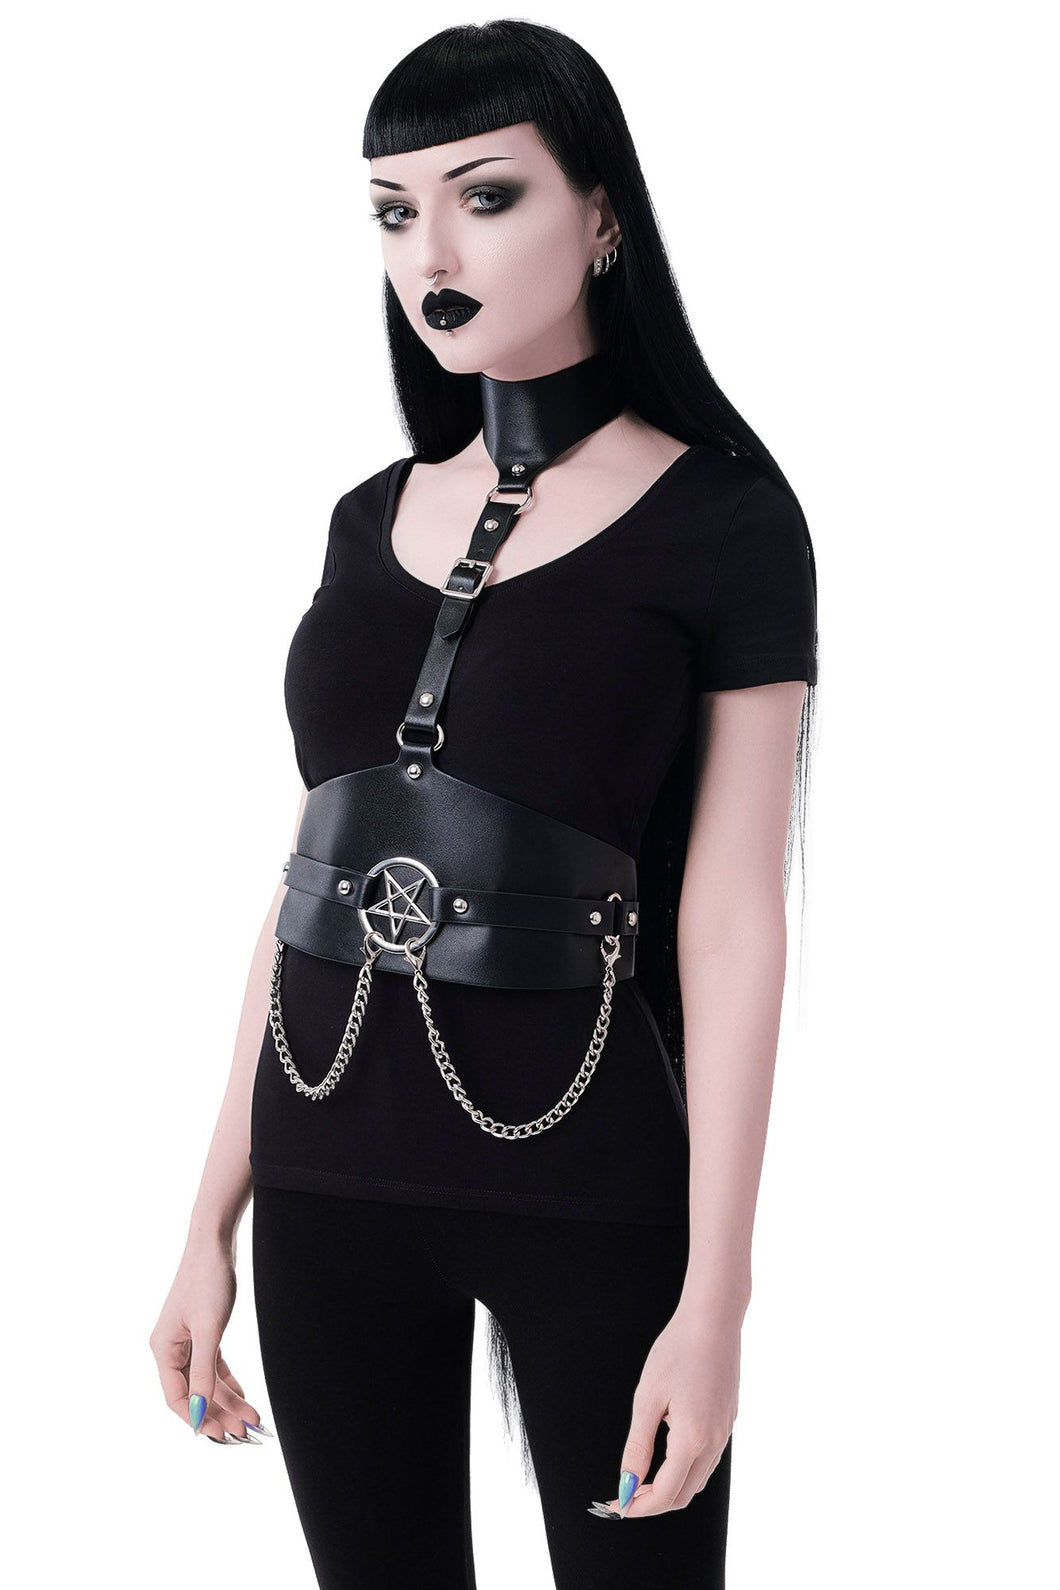 Killstar Salvation Harness - Kate's Clothing